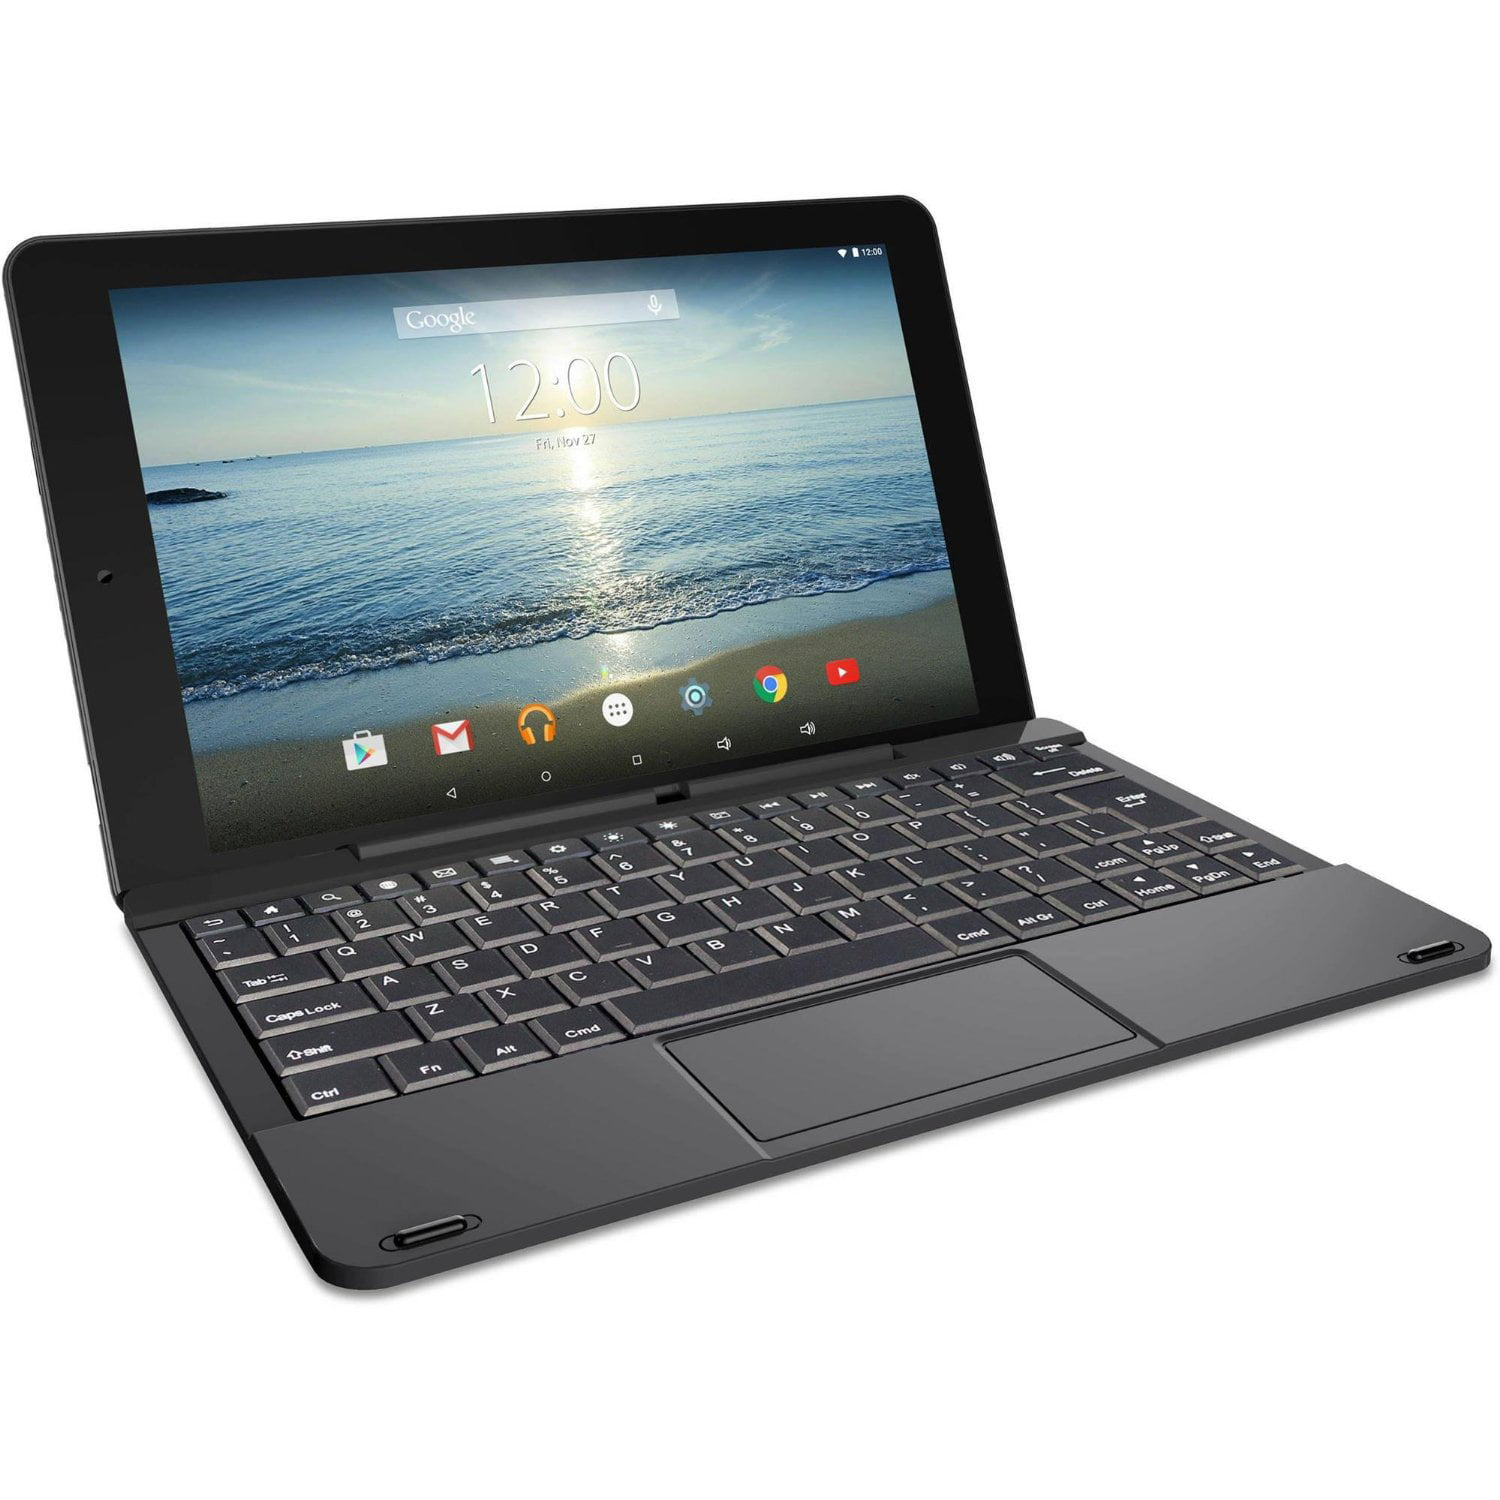 "Refurbished RCA RCT6303W87DK 10"" Viking Pro Black Tablet 2-in-1 Android 5.0 32GB Quad Core"